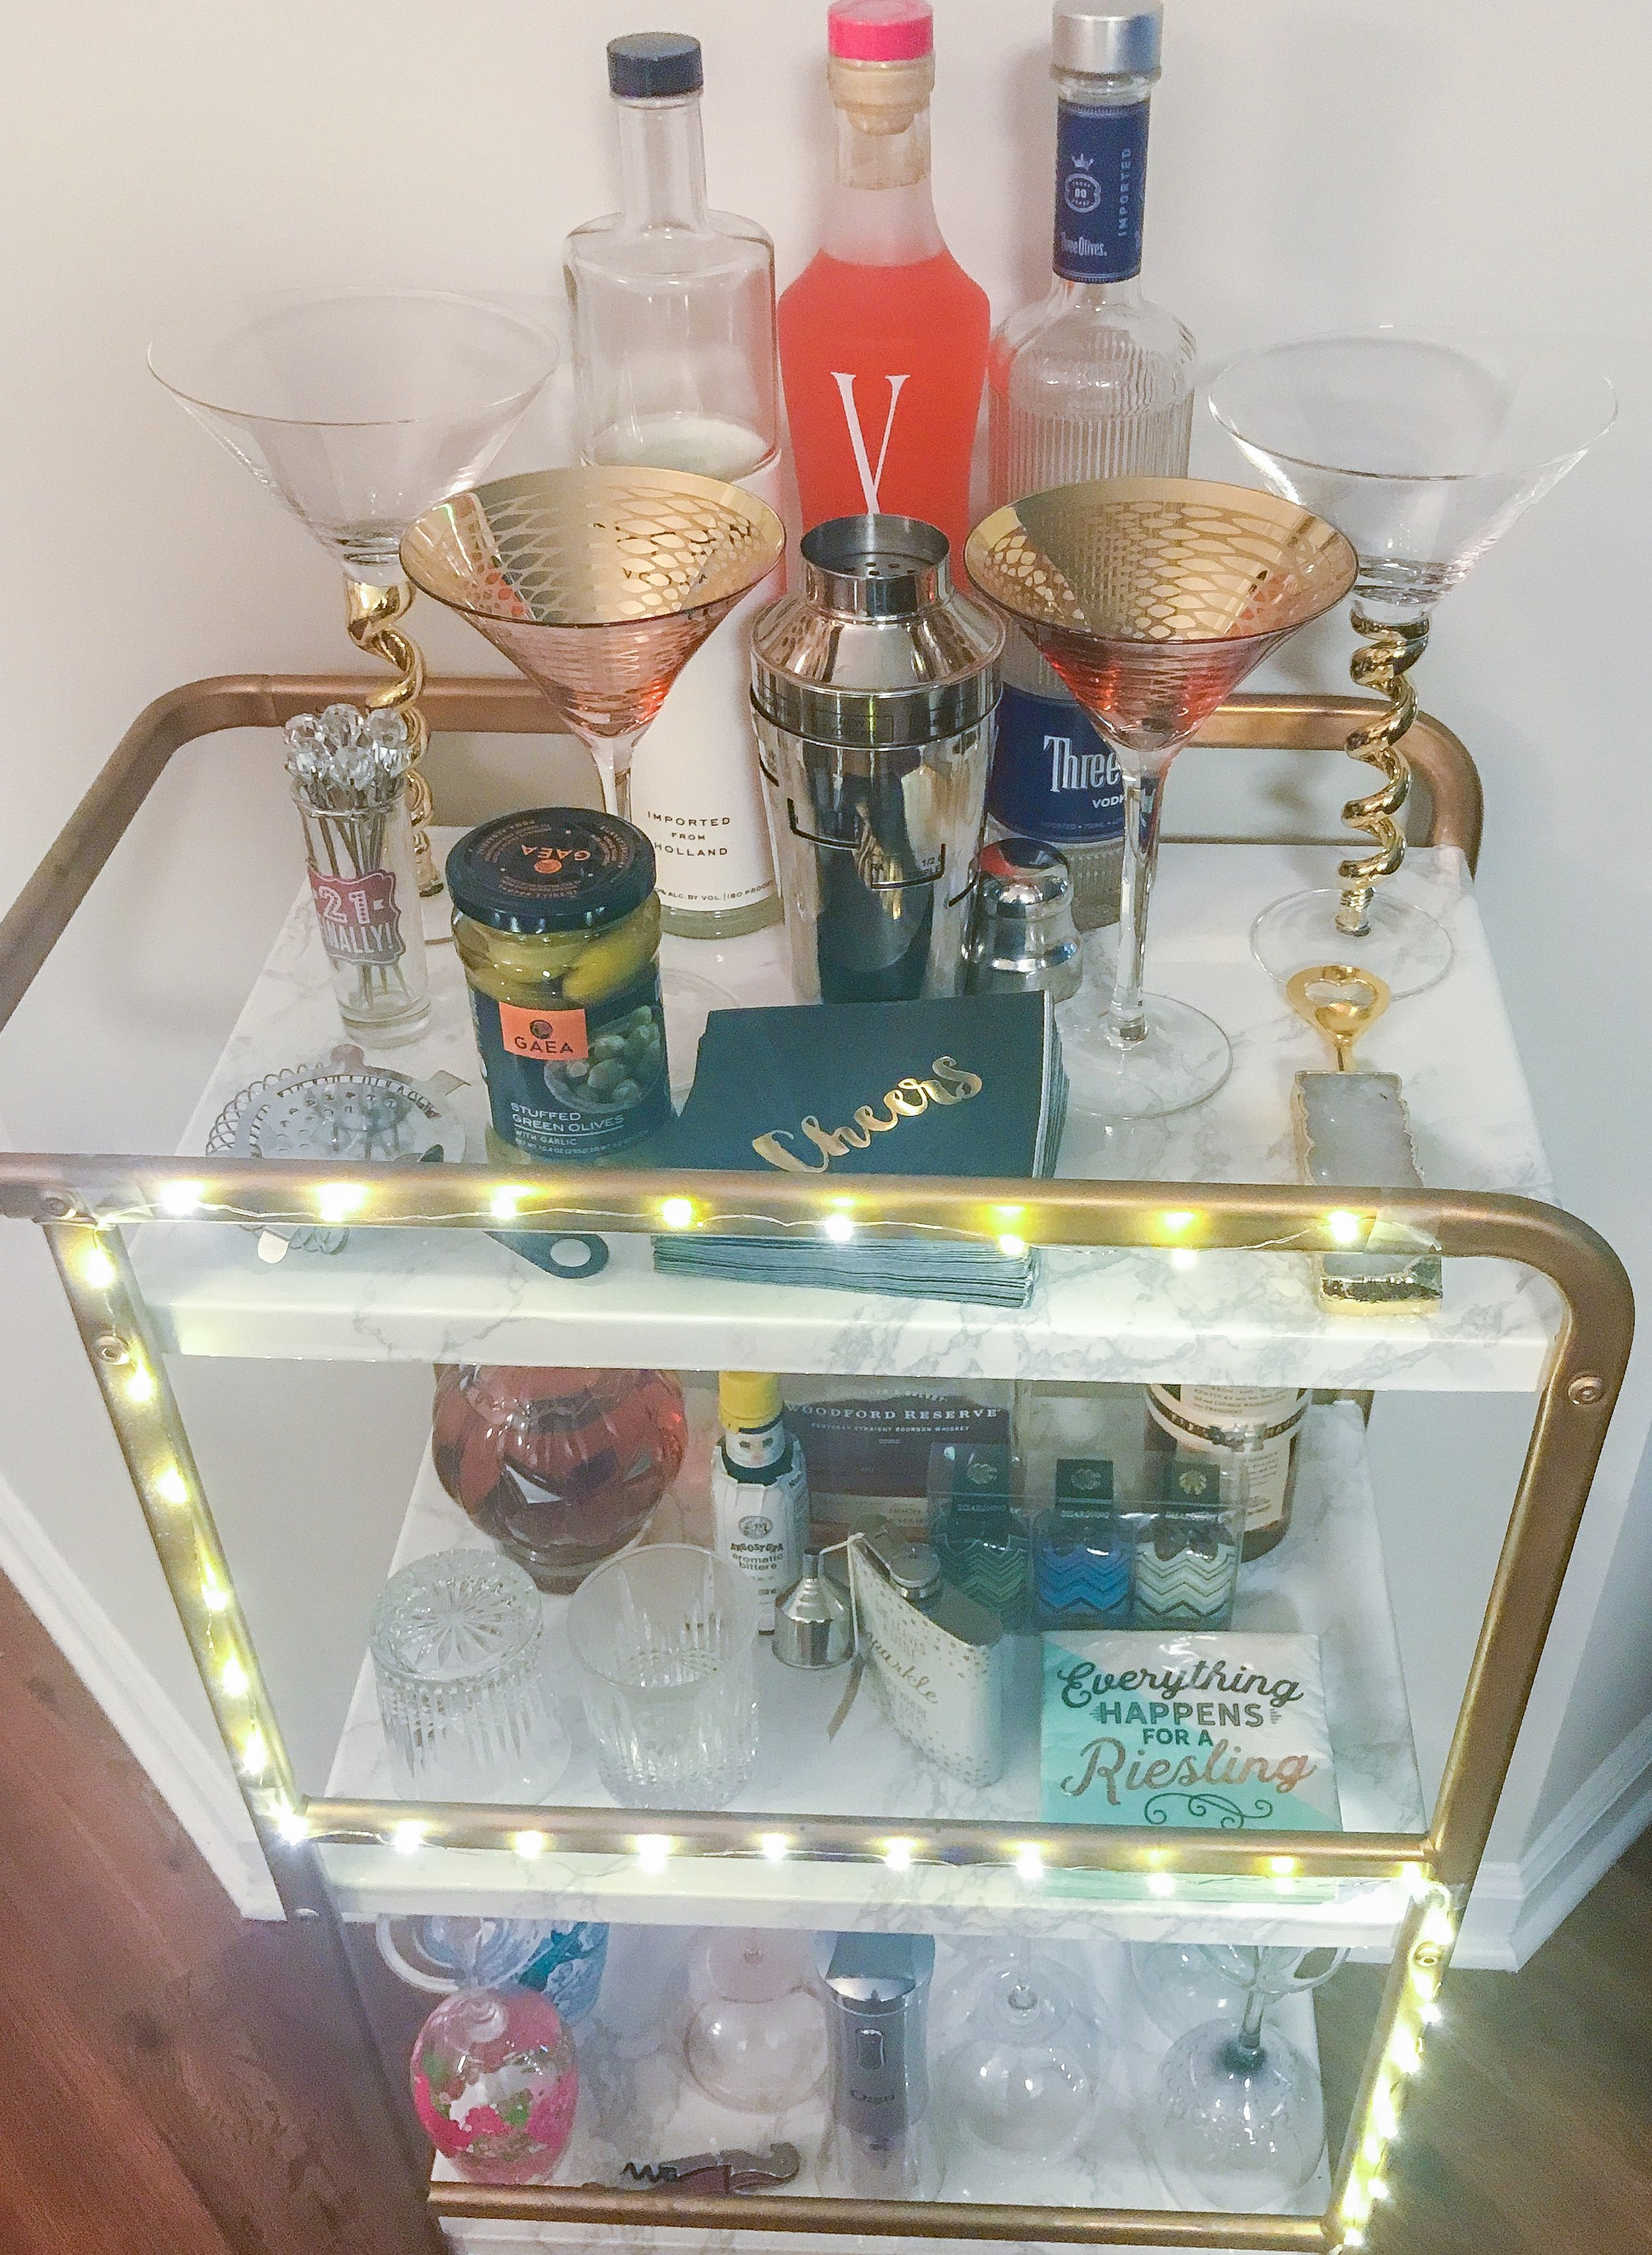 I made this bar cart and had it in my old apartment when I lived alone, and since Mack and I have moved in together he has made it his pride and joy (besides the fairy lights). I think it looks so cute the way he has it! Top shelf is liquor, middle shelf is bourbons, and the bottom shelf is a few of my most precious wine glasses on display.